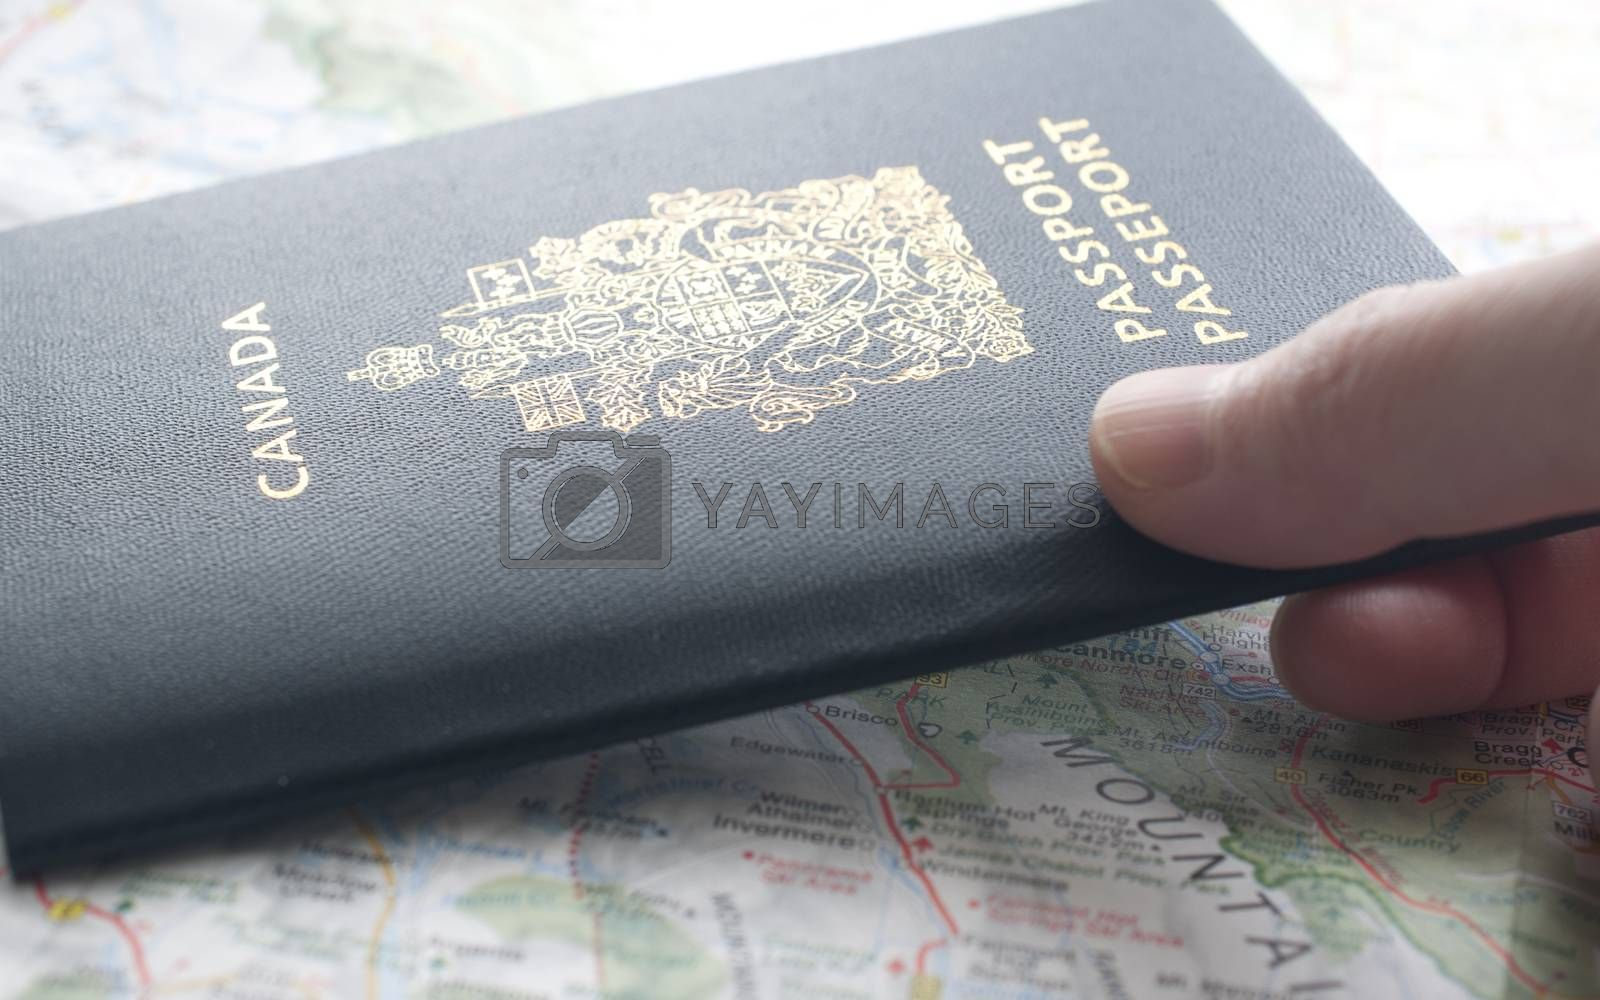 People carrying passport and map ready to travel.